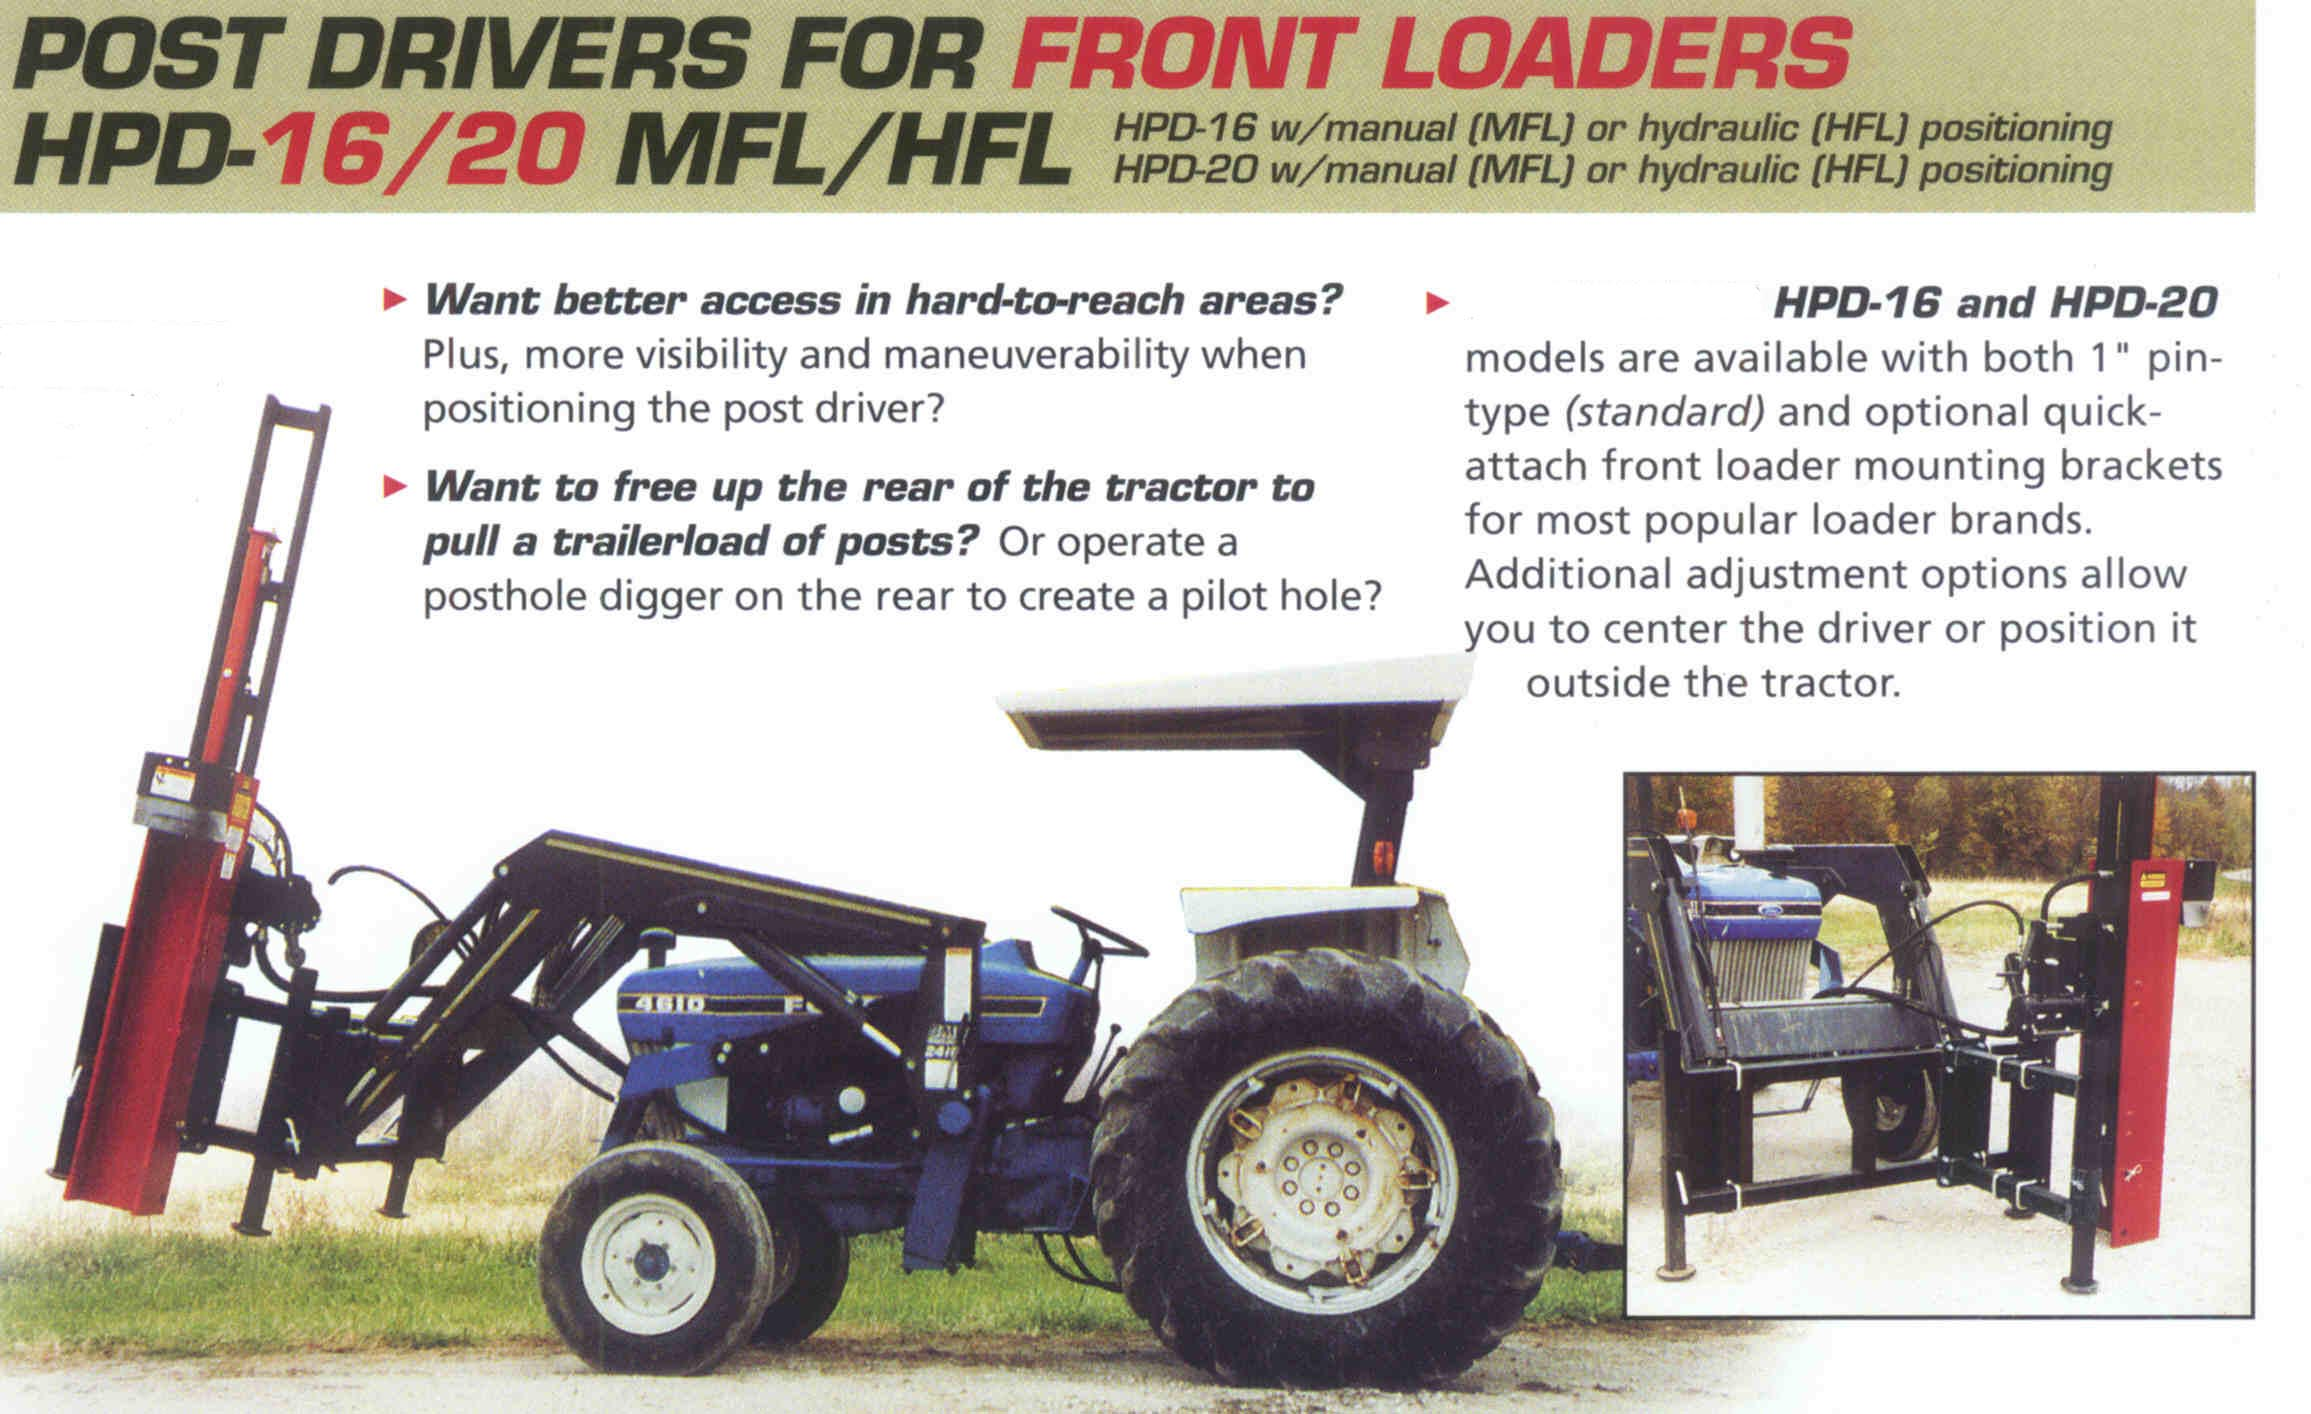 Features Front Loader Mount Models